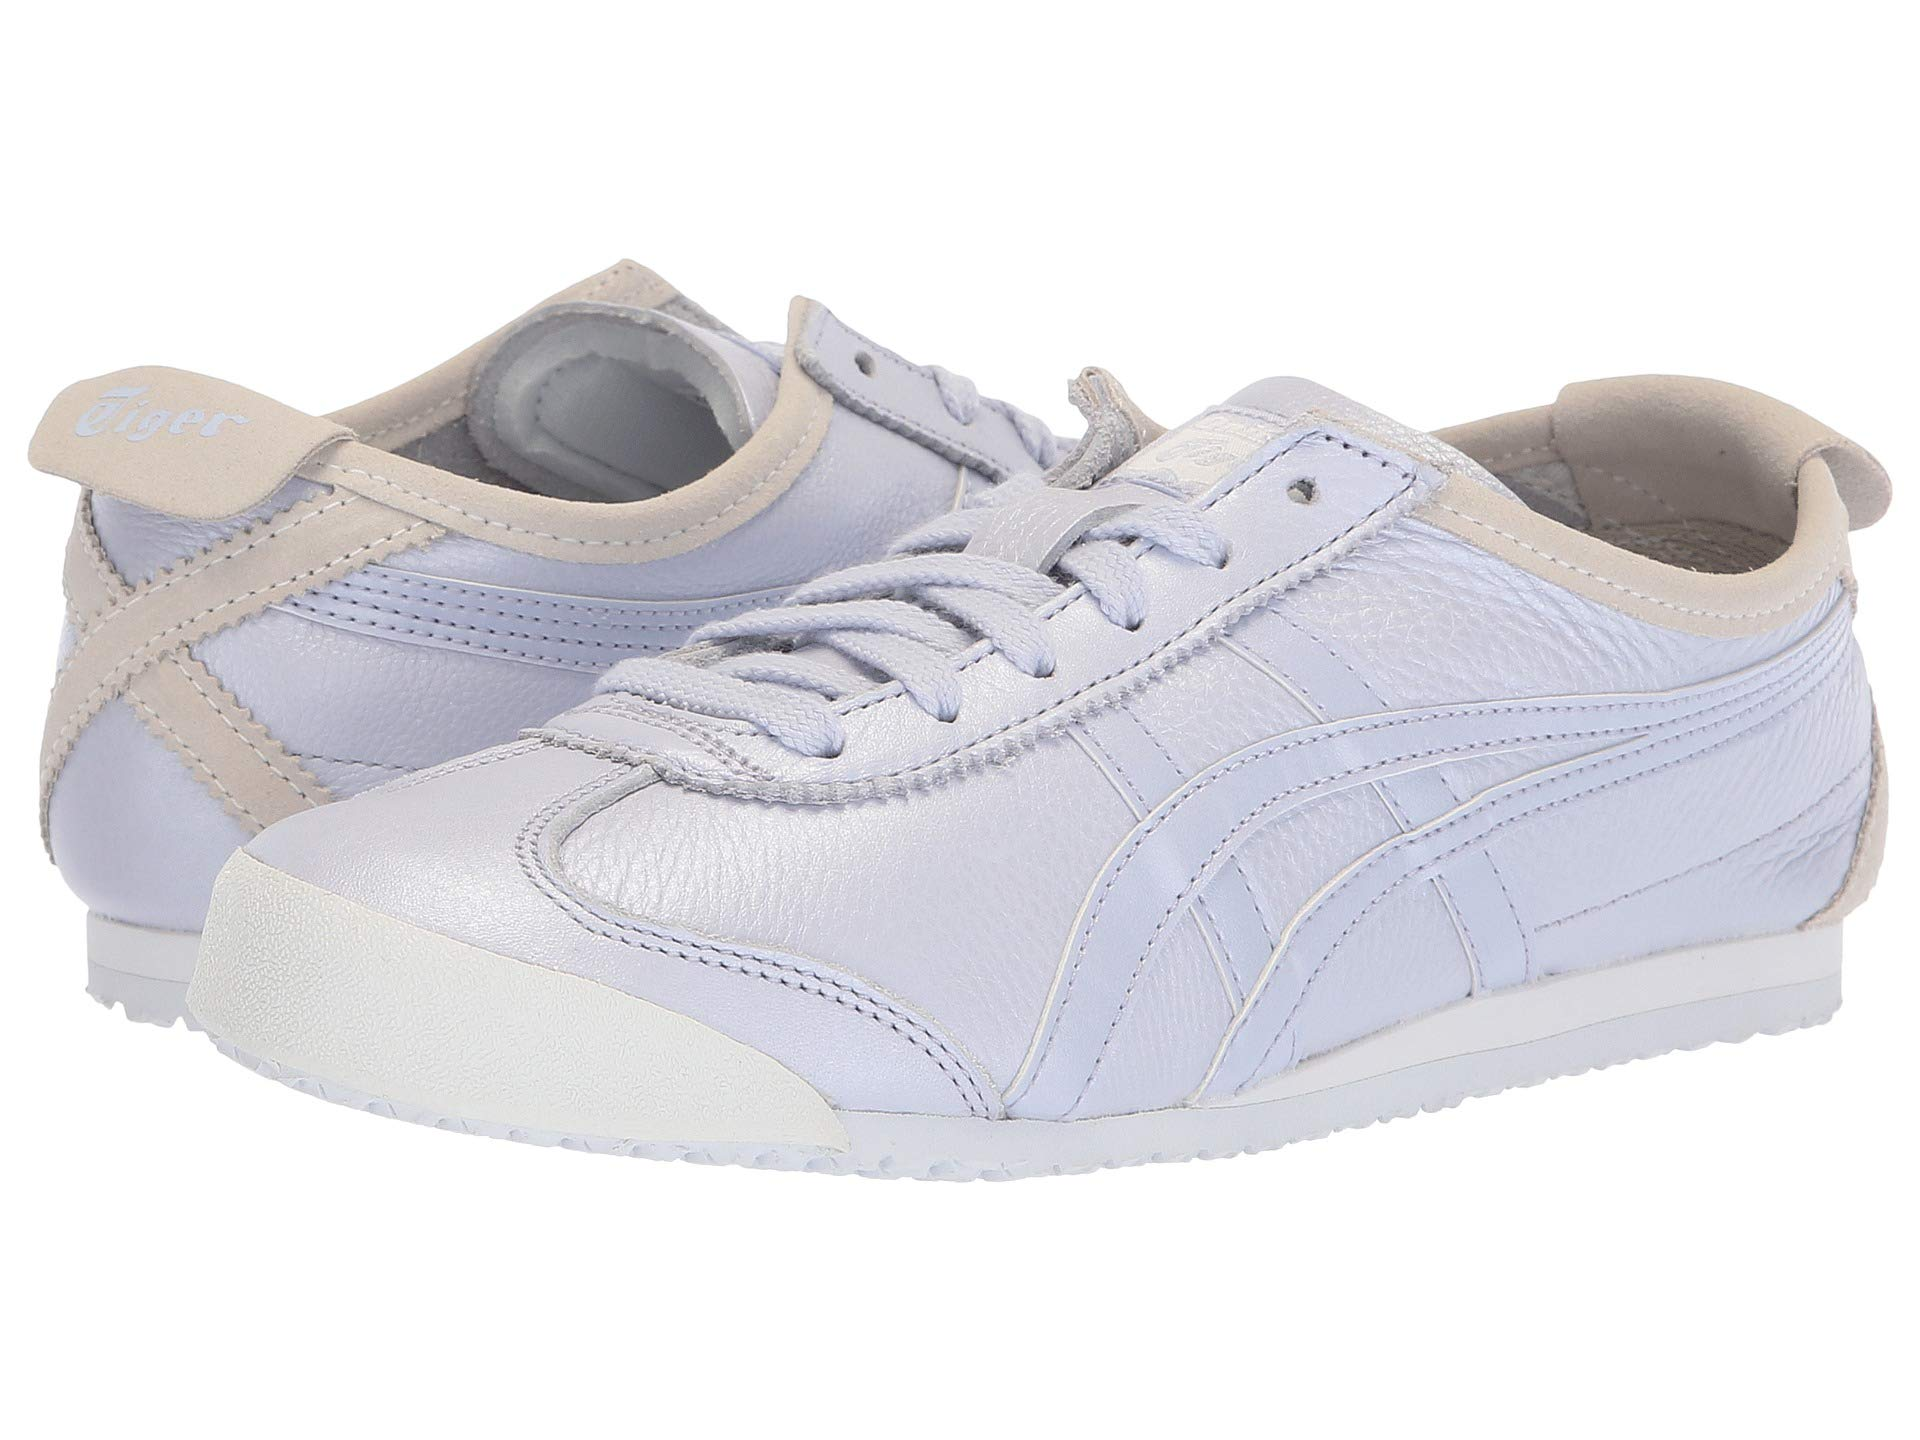 uk availability 47566 9c444 Кроссовки Onitsuka Tiger by Asics Mexico 66® Purple, 44 (280 мм) (10119784)